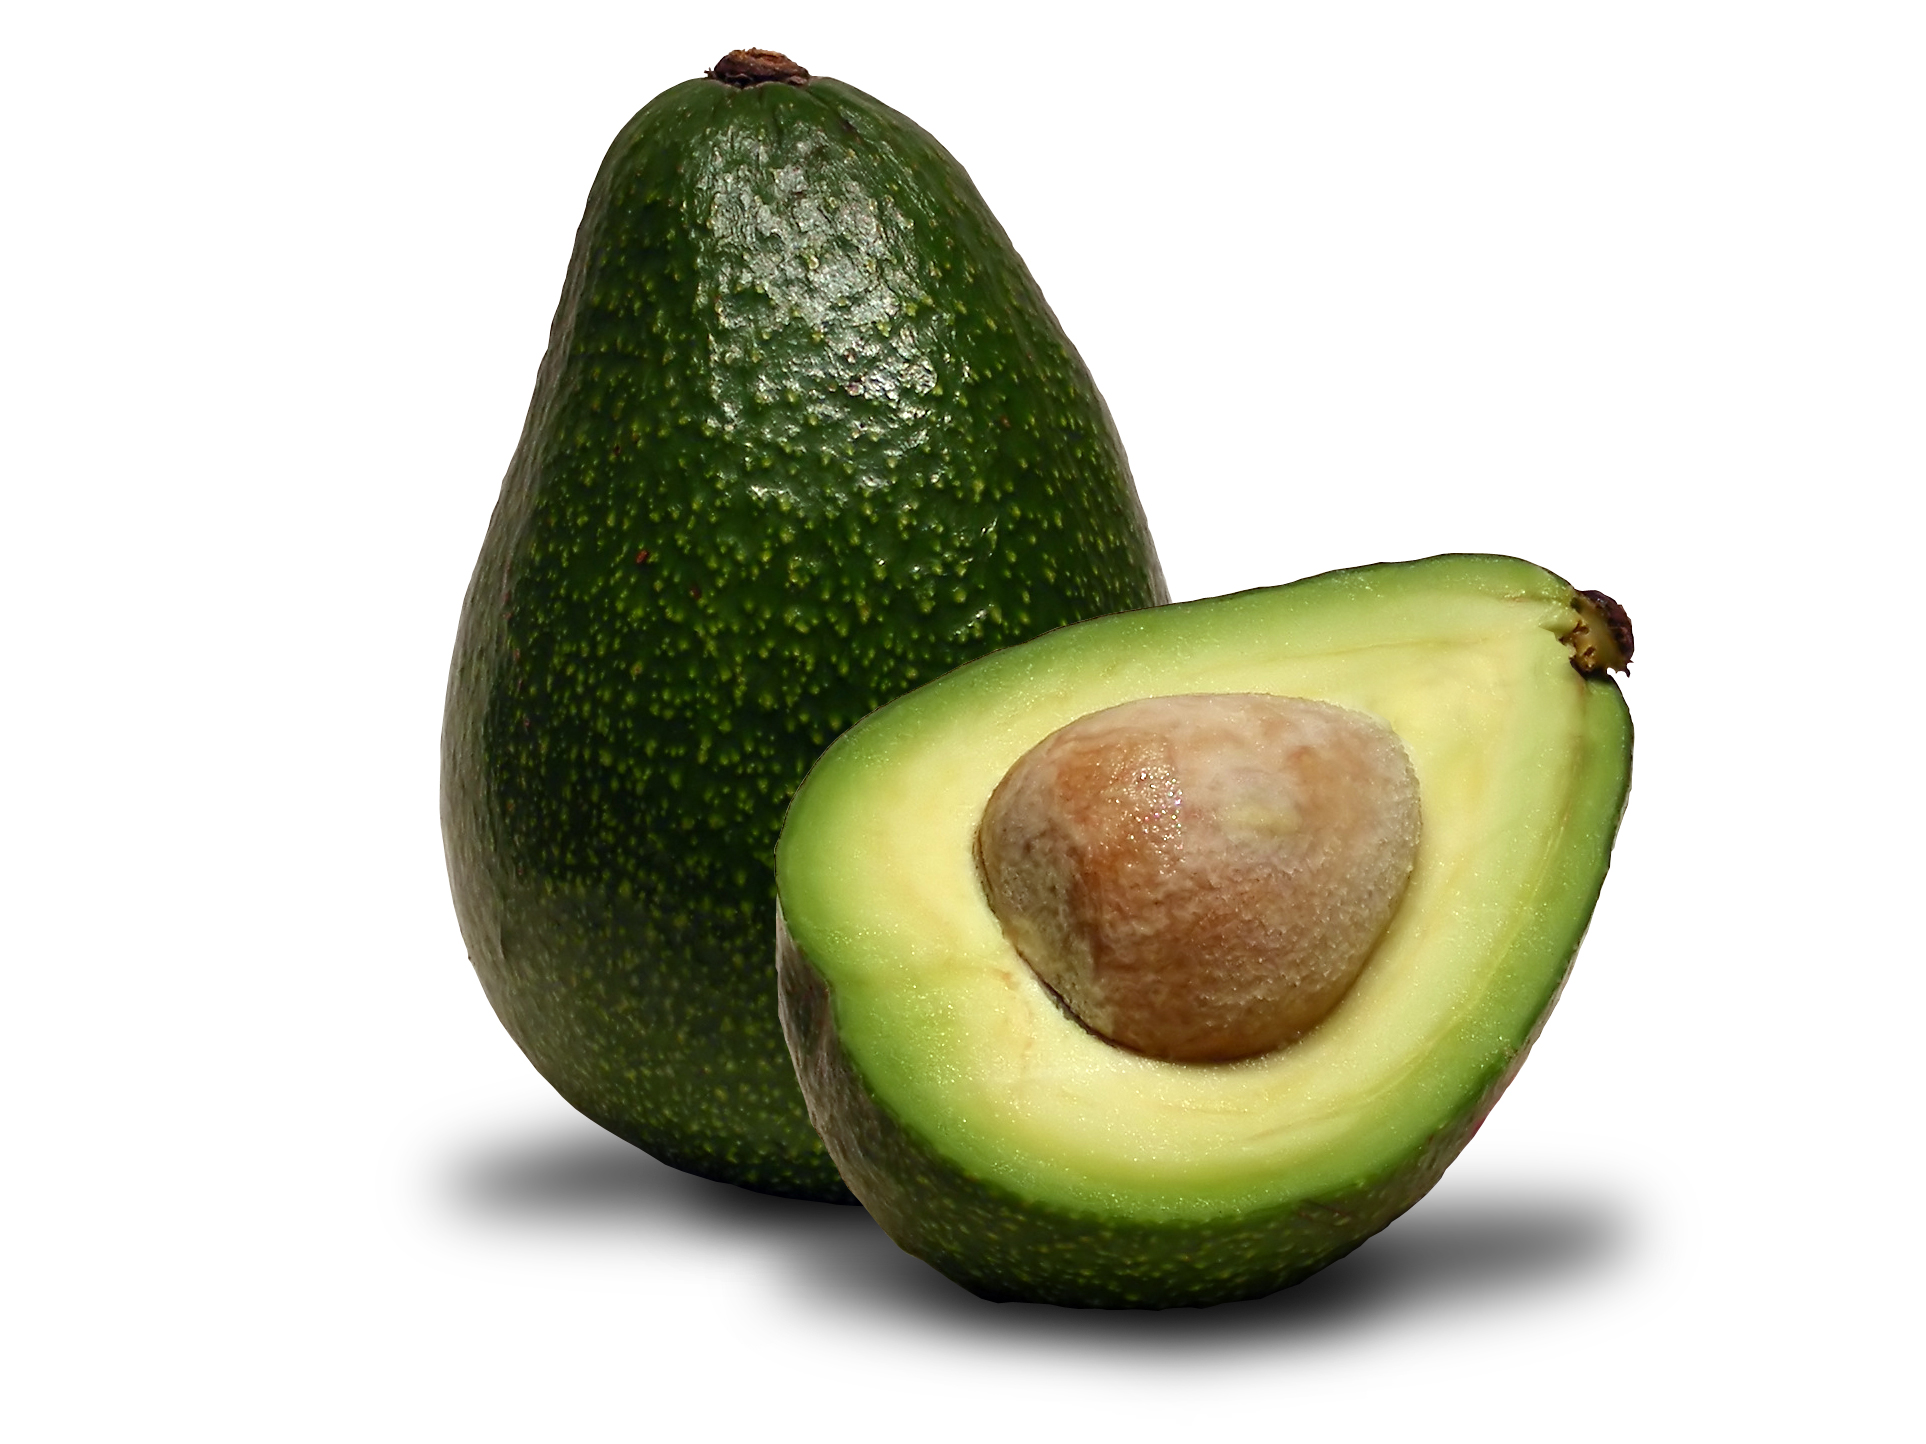 An avocado like this requires 63 gallons of water to grow, enough water to survive